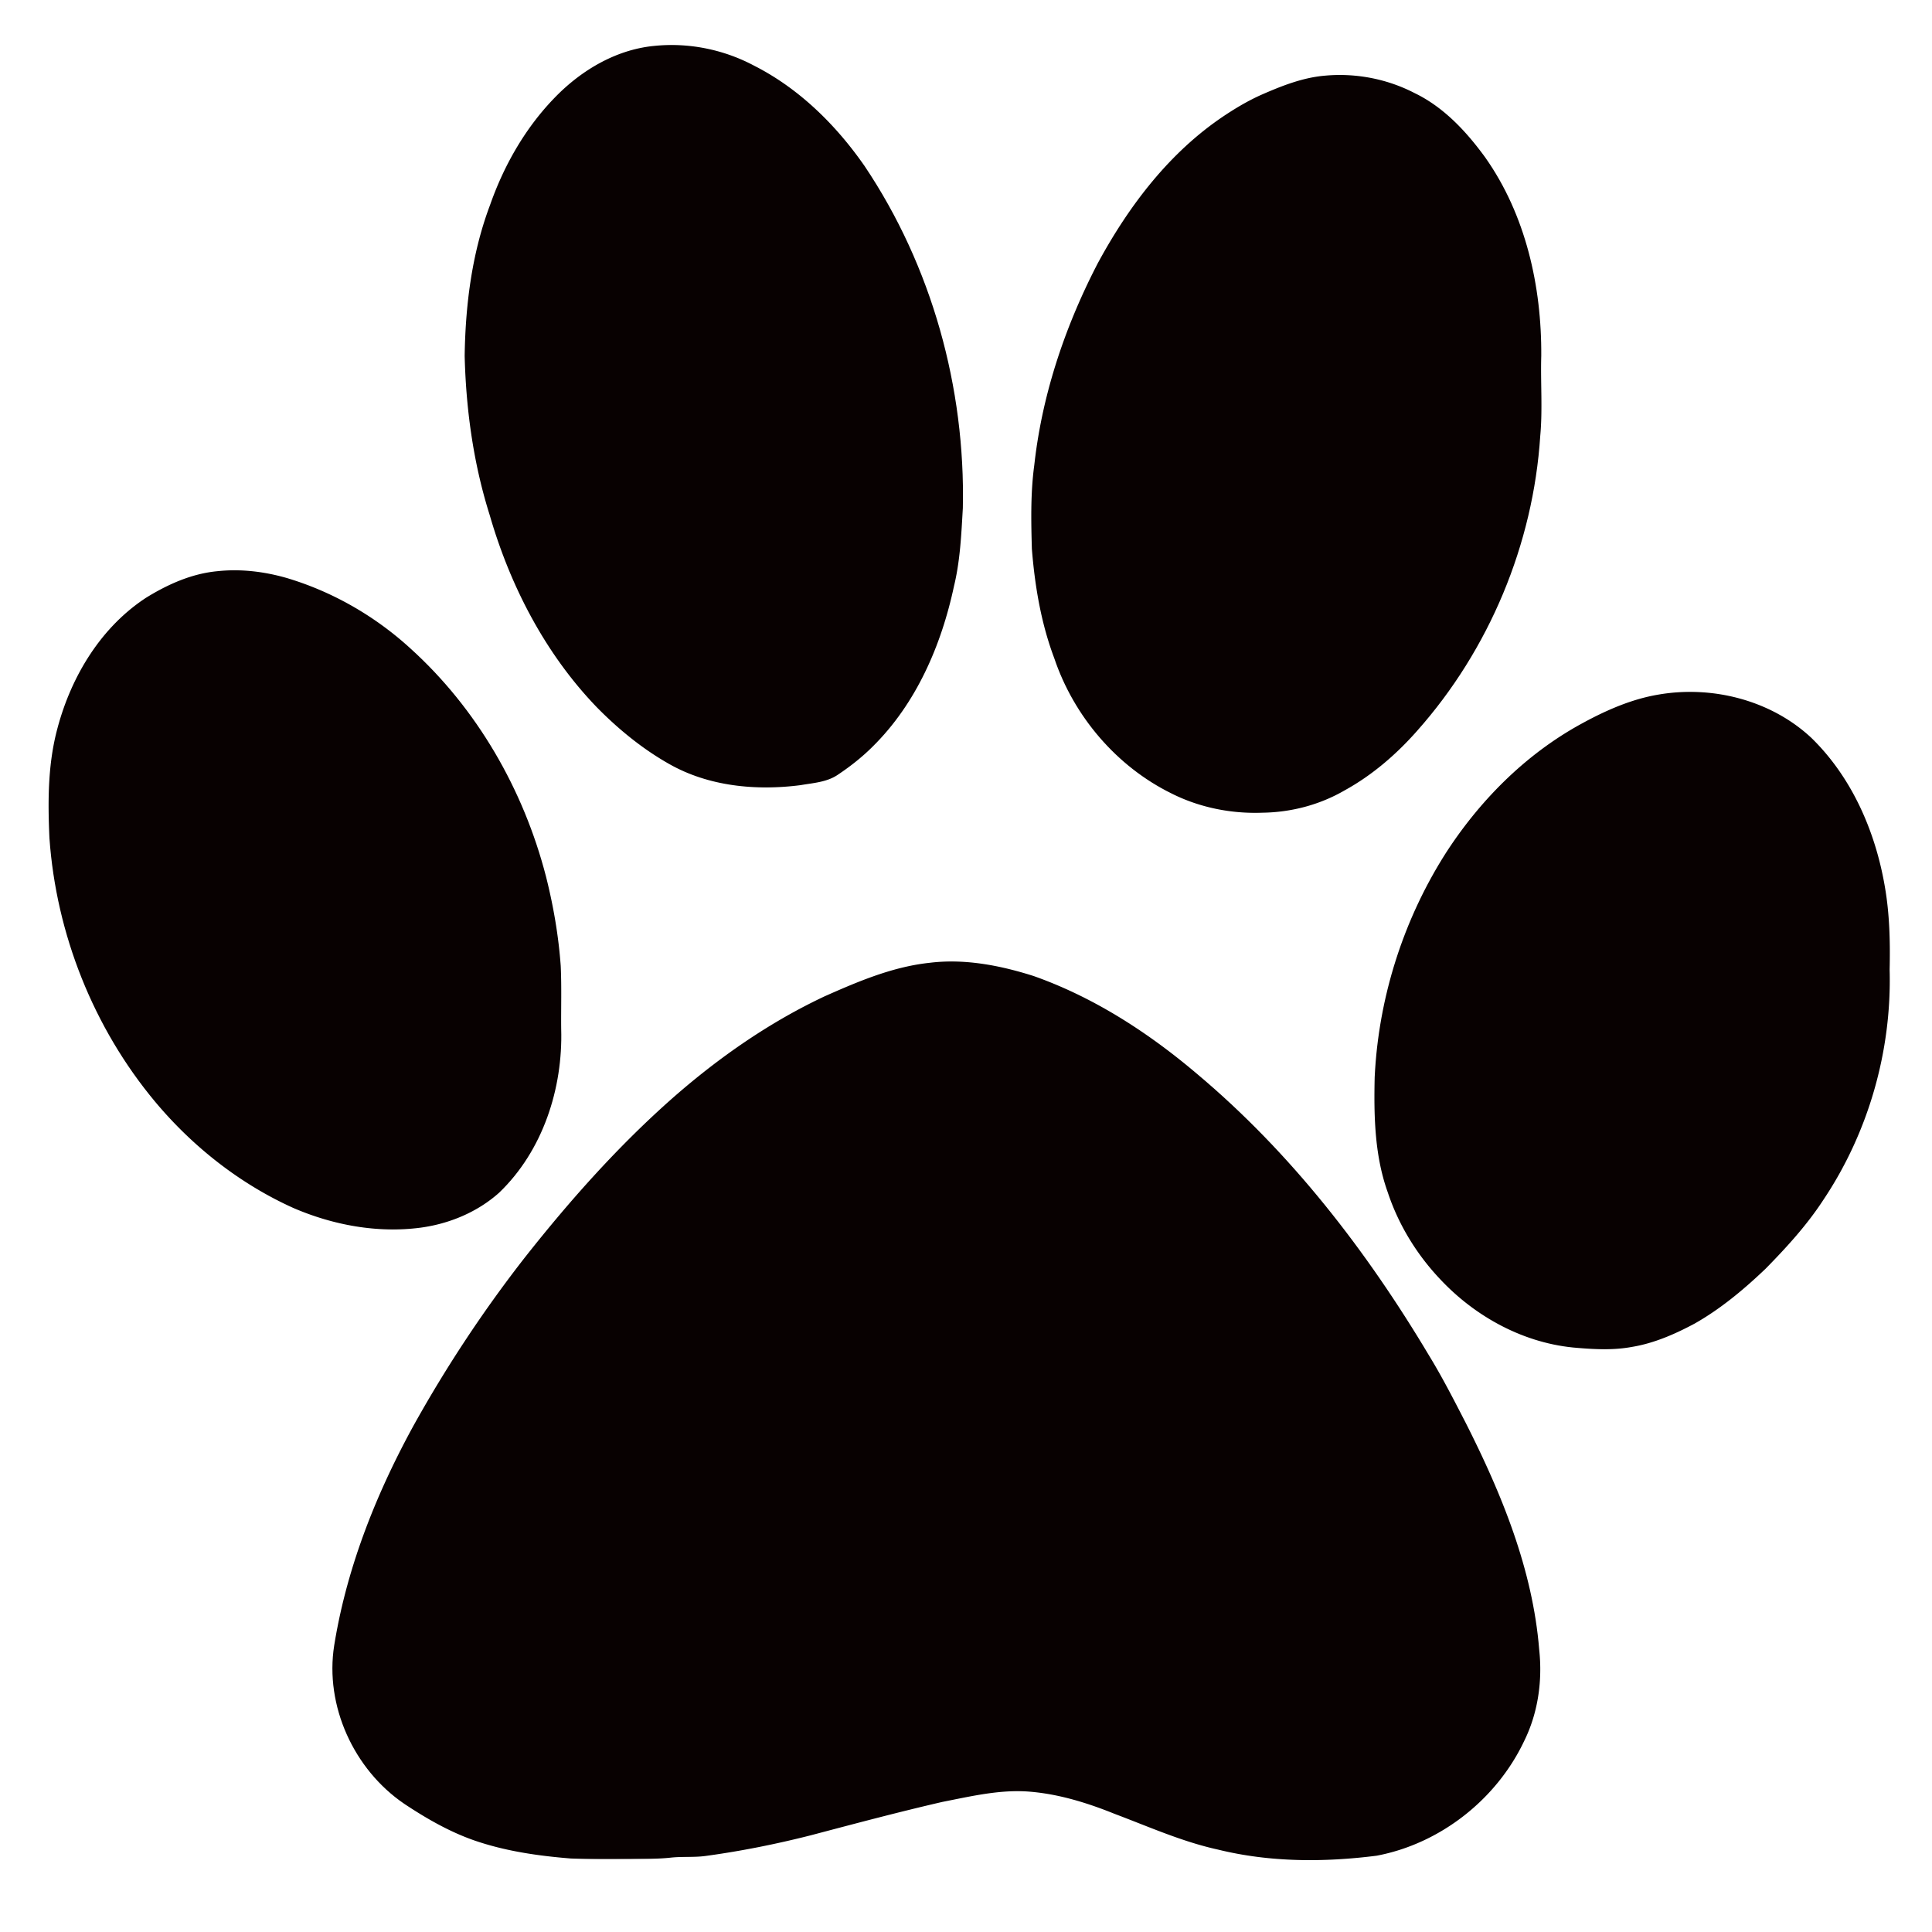 panther paw print clip art clipart best clipart best locker